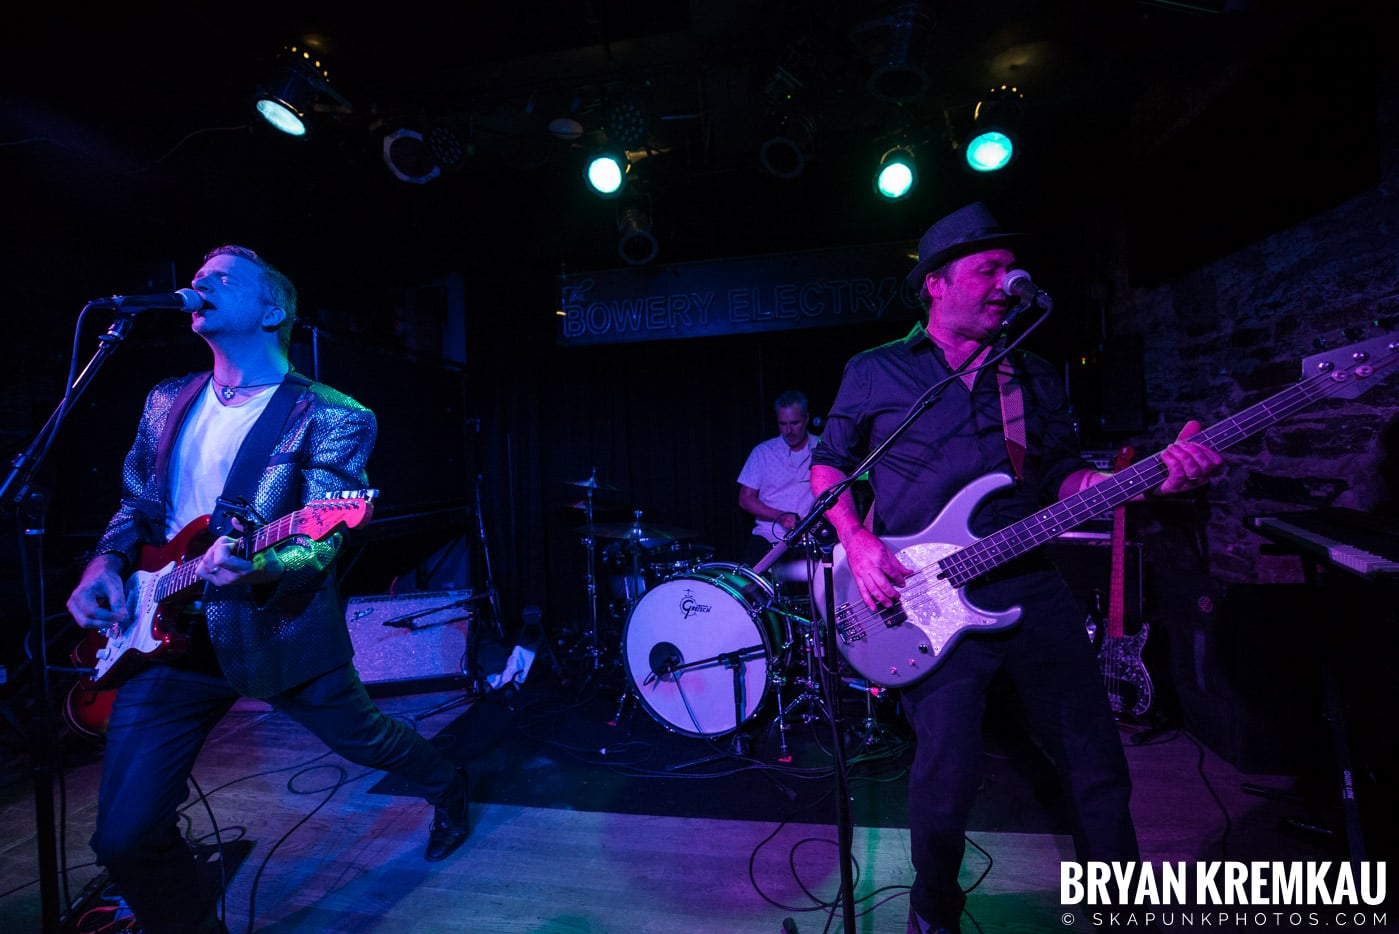 The Push Stars @ The Bowery Electric, NYC - 9.29.17 (15)